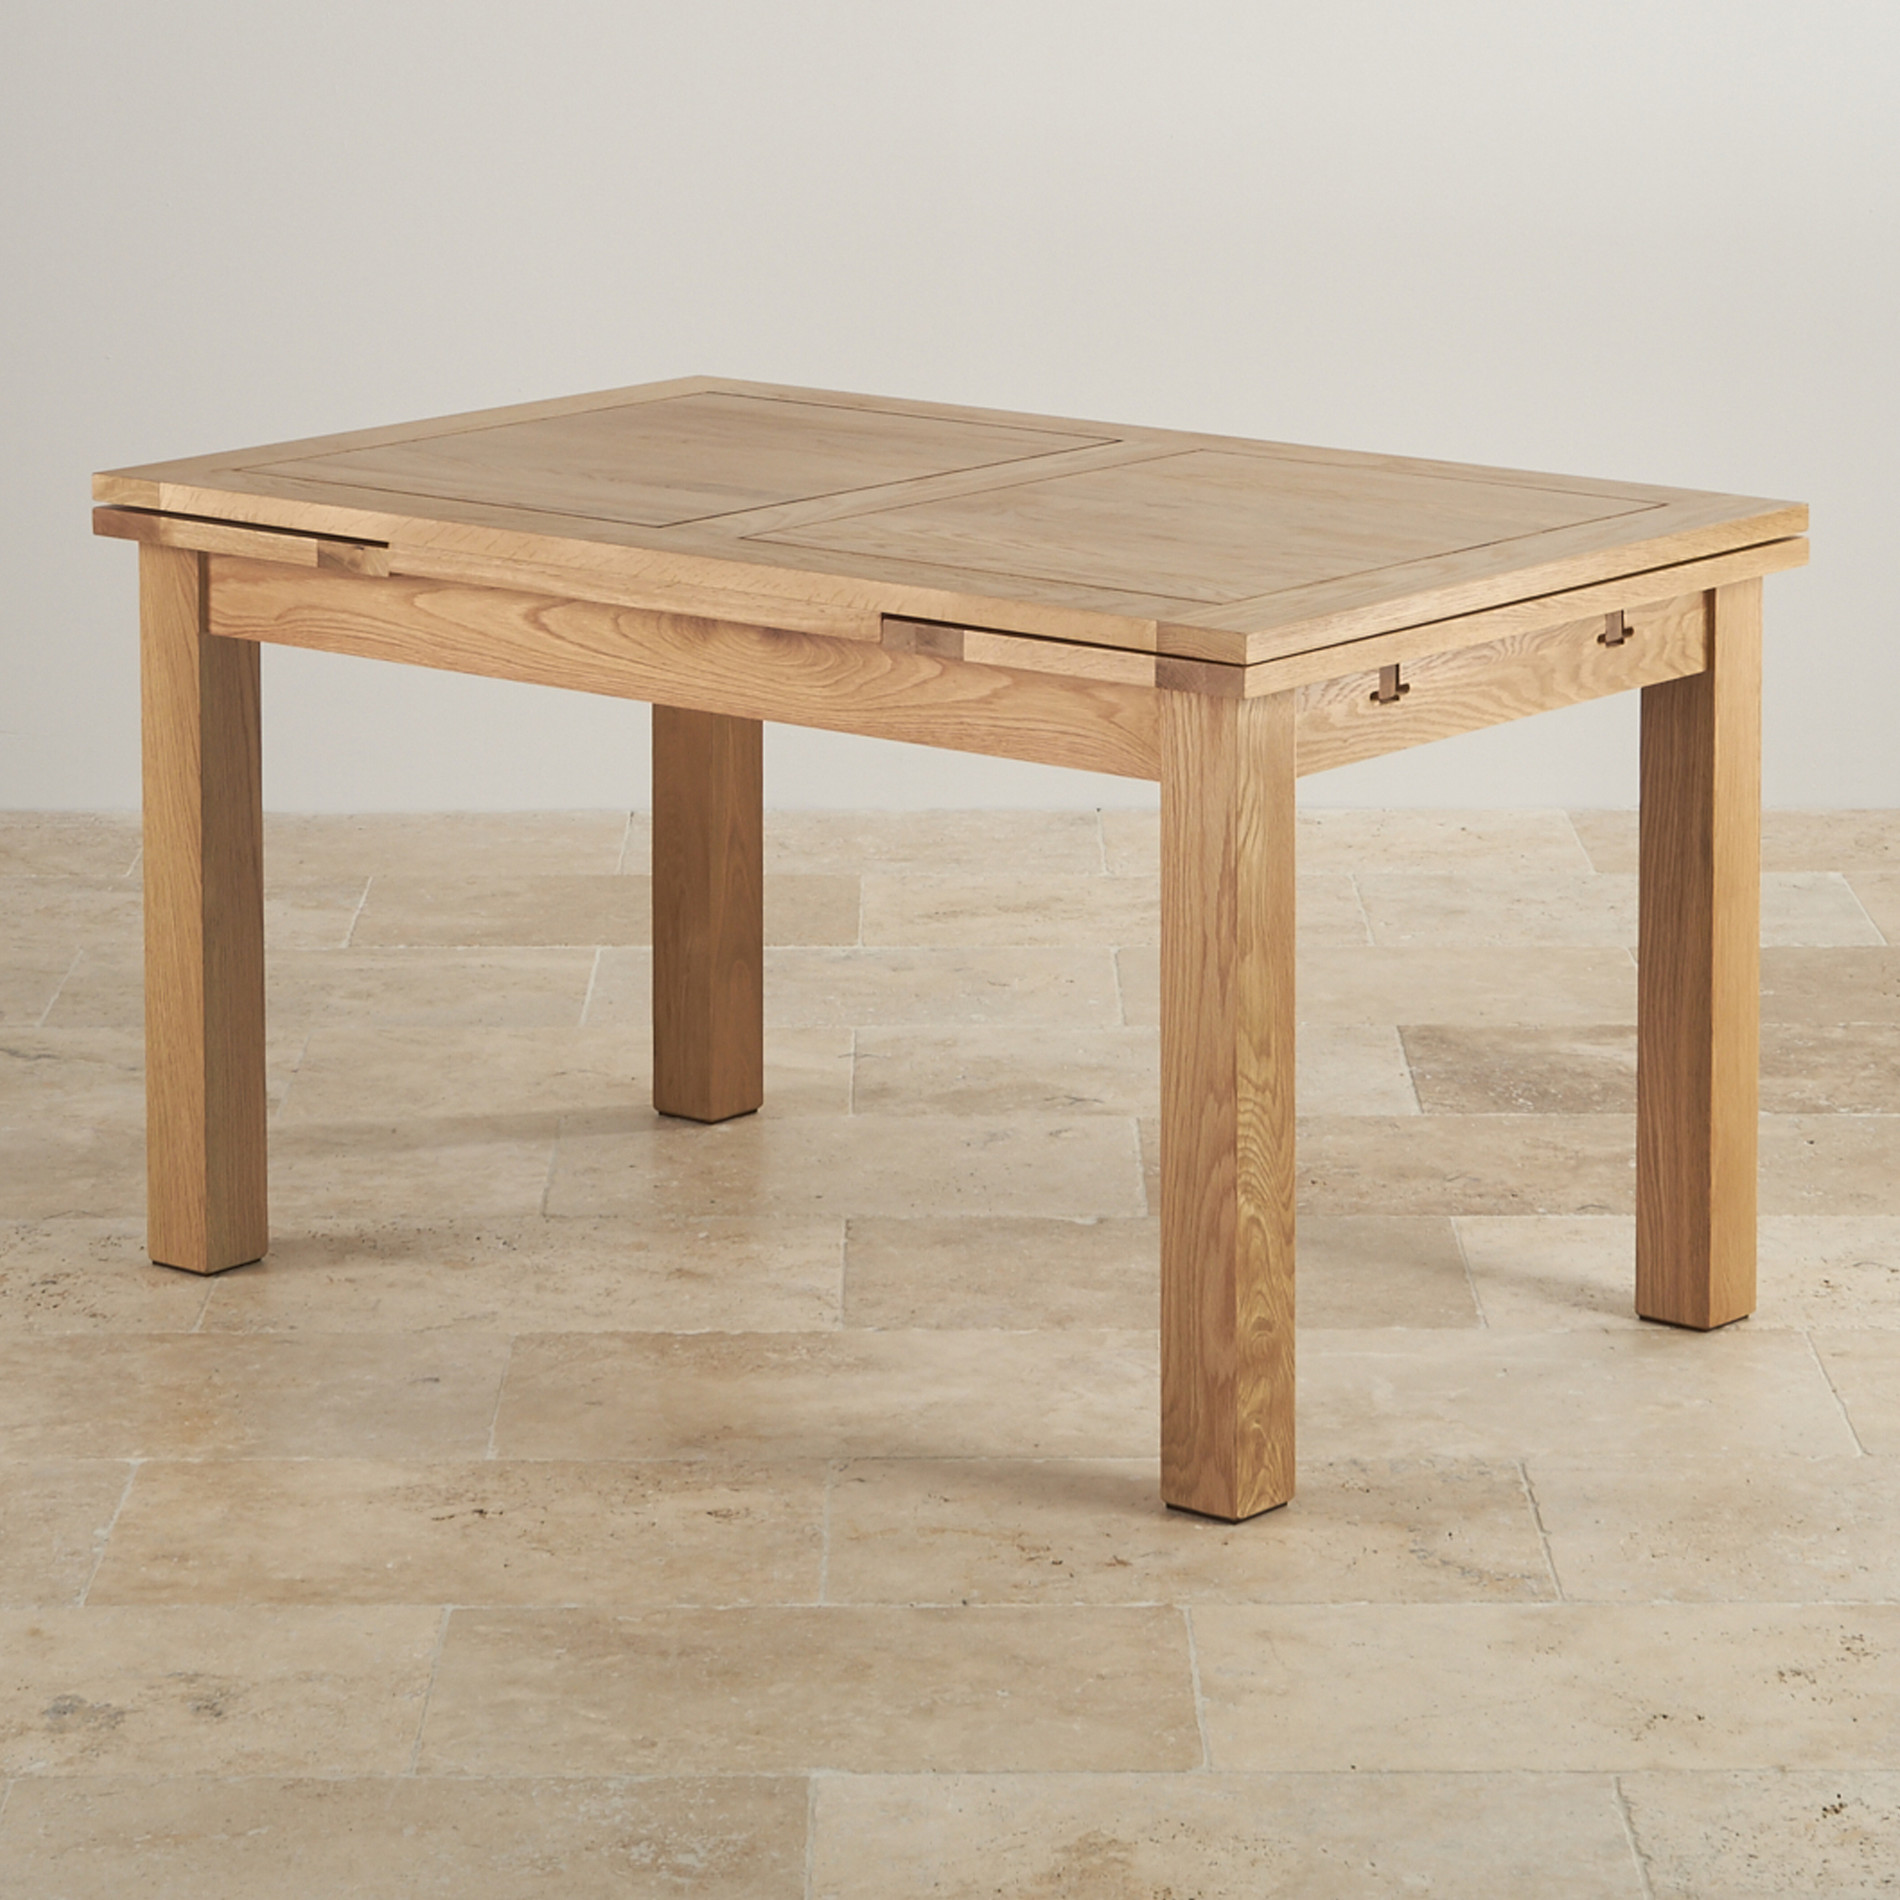 Dorset 4ft 7 natural oak extending dining table seats up to 8 for Table cuisine 70 x 100